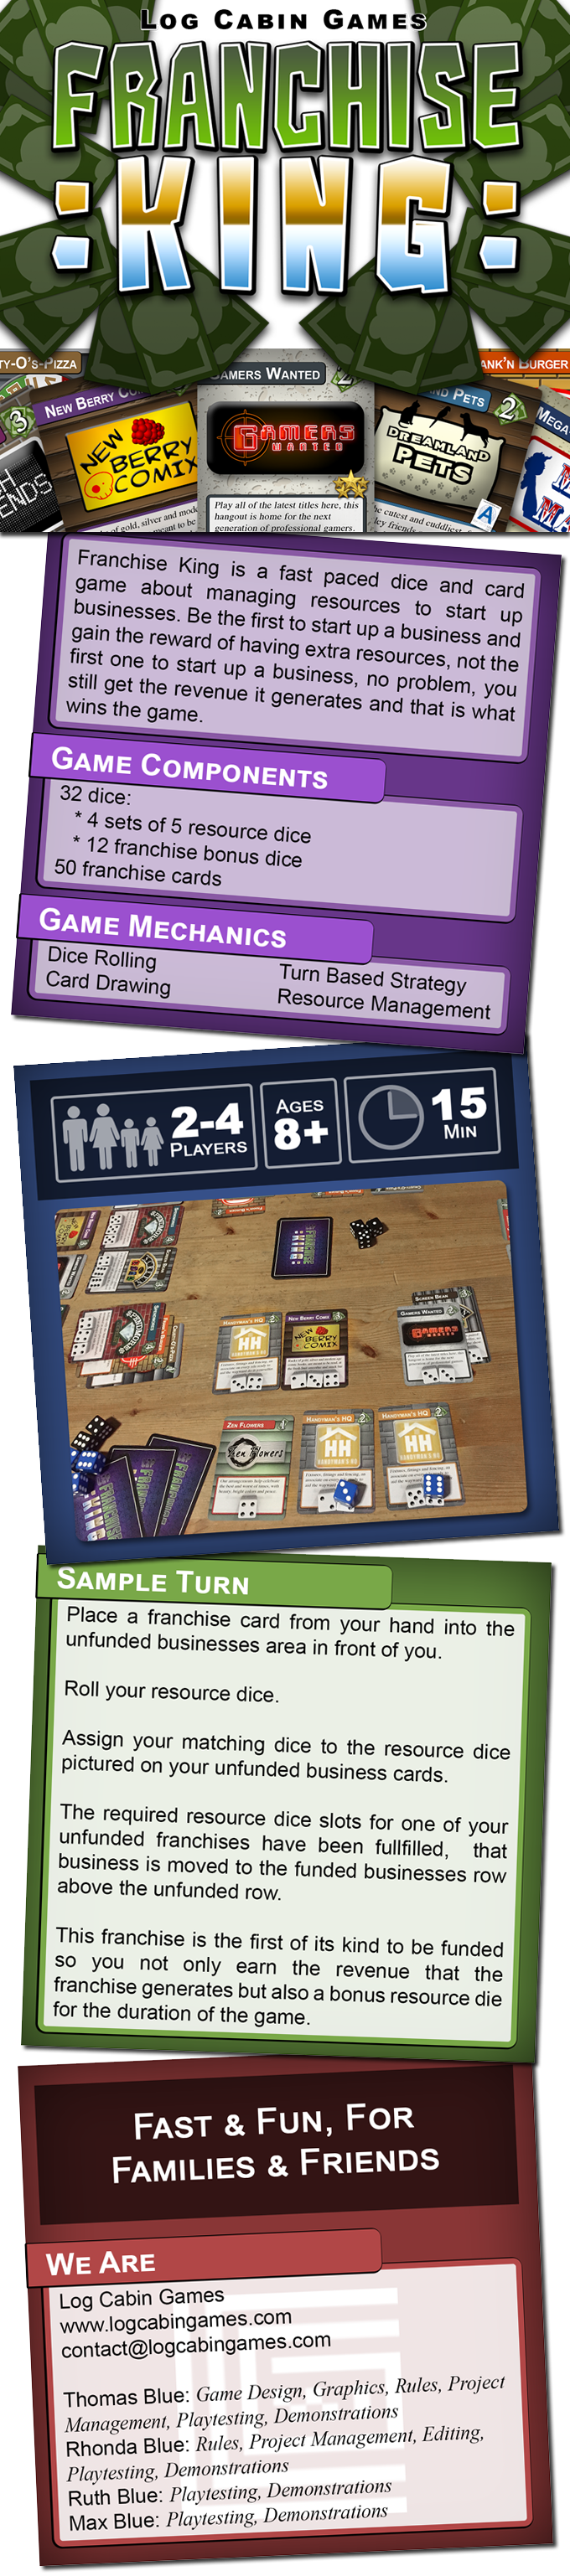 Franchise king a card and dice game by log cabin games kickstarter demo game video a demonstration of the basic rules and stages of game play reheart Choice Image